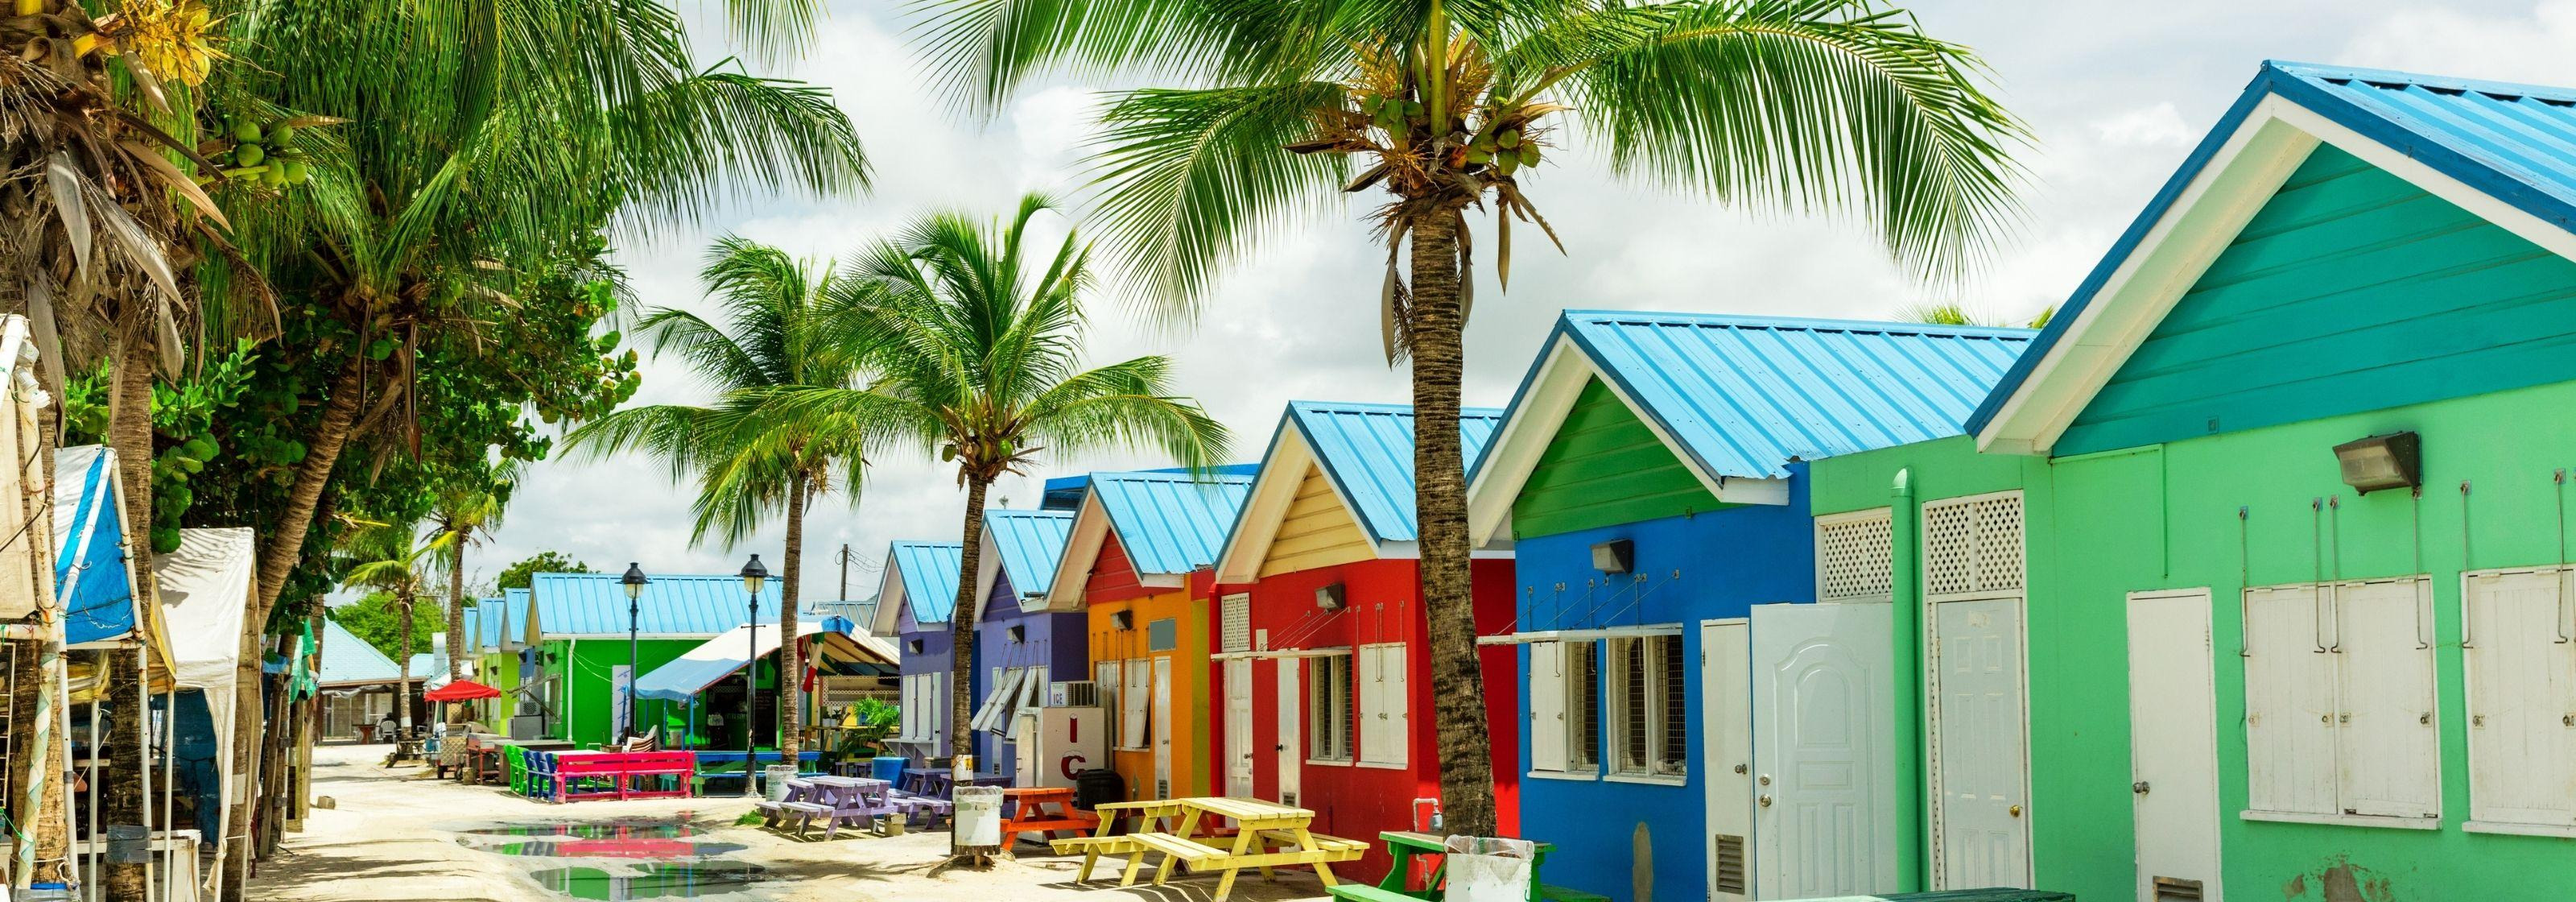 Things to do in Barbados